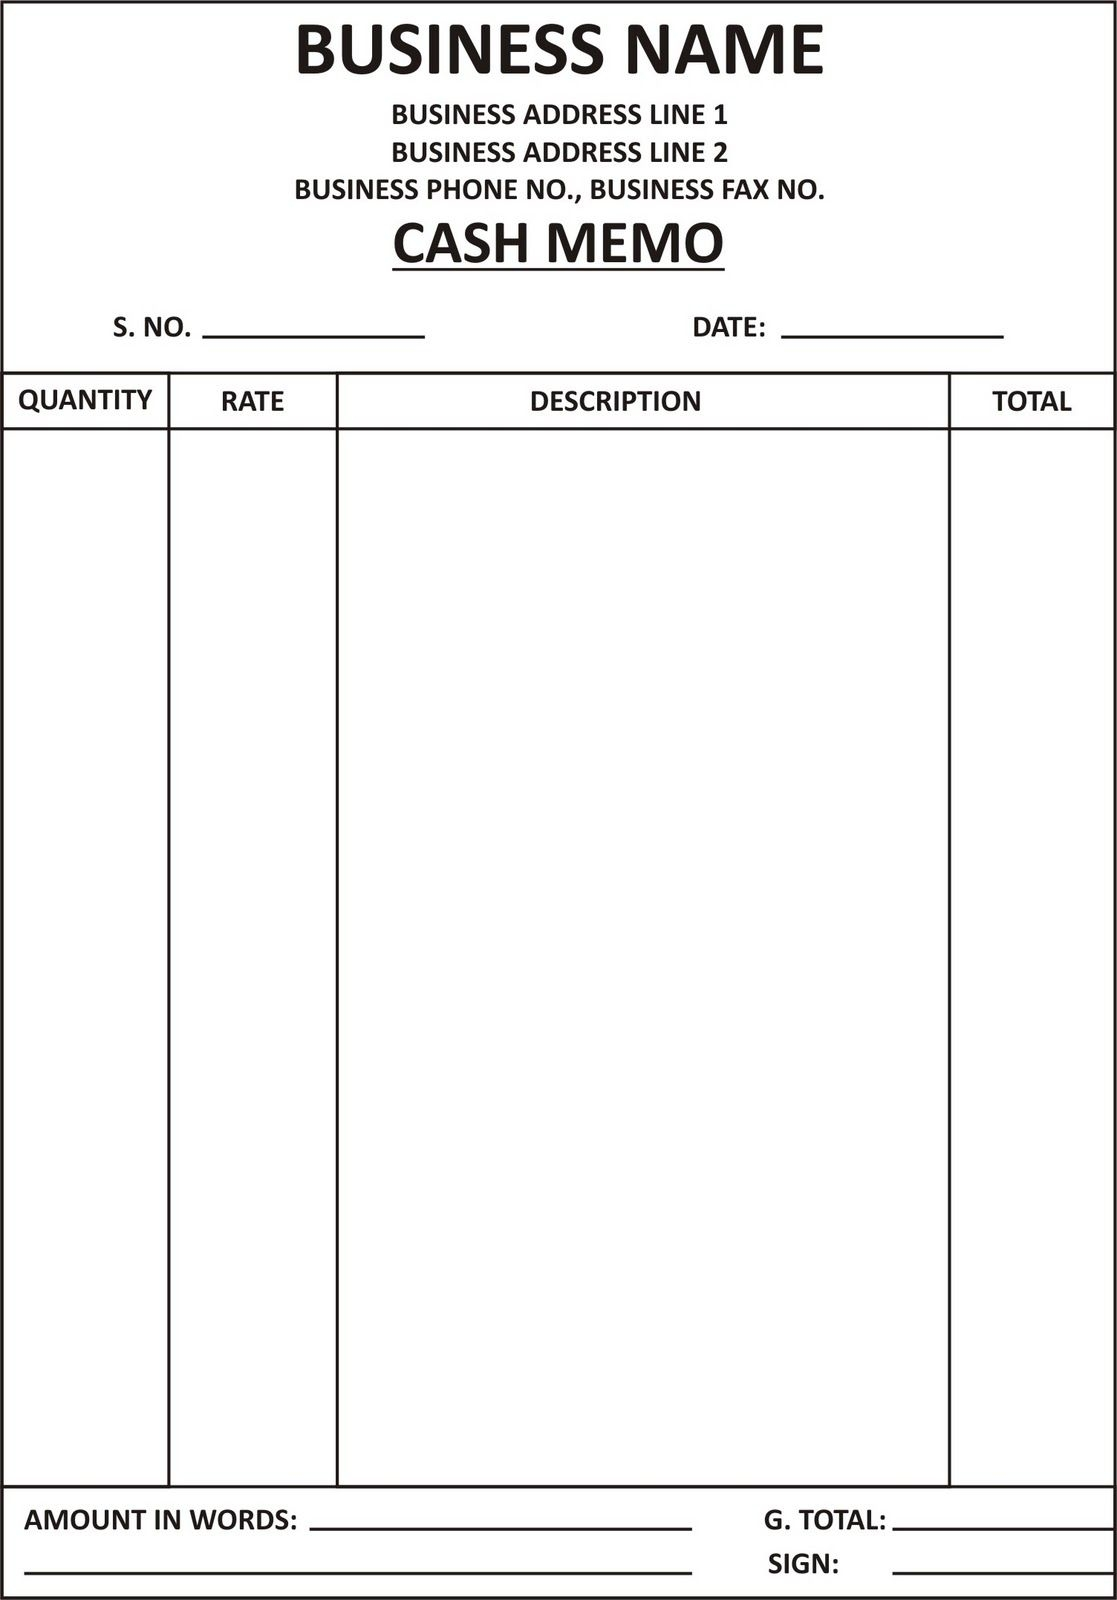 cash bill format submited images pic 2 fly invoice format studio cash memo in gst format